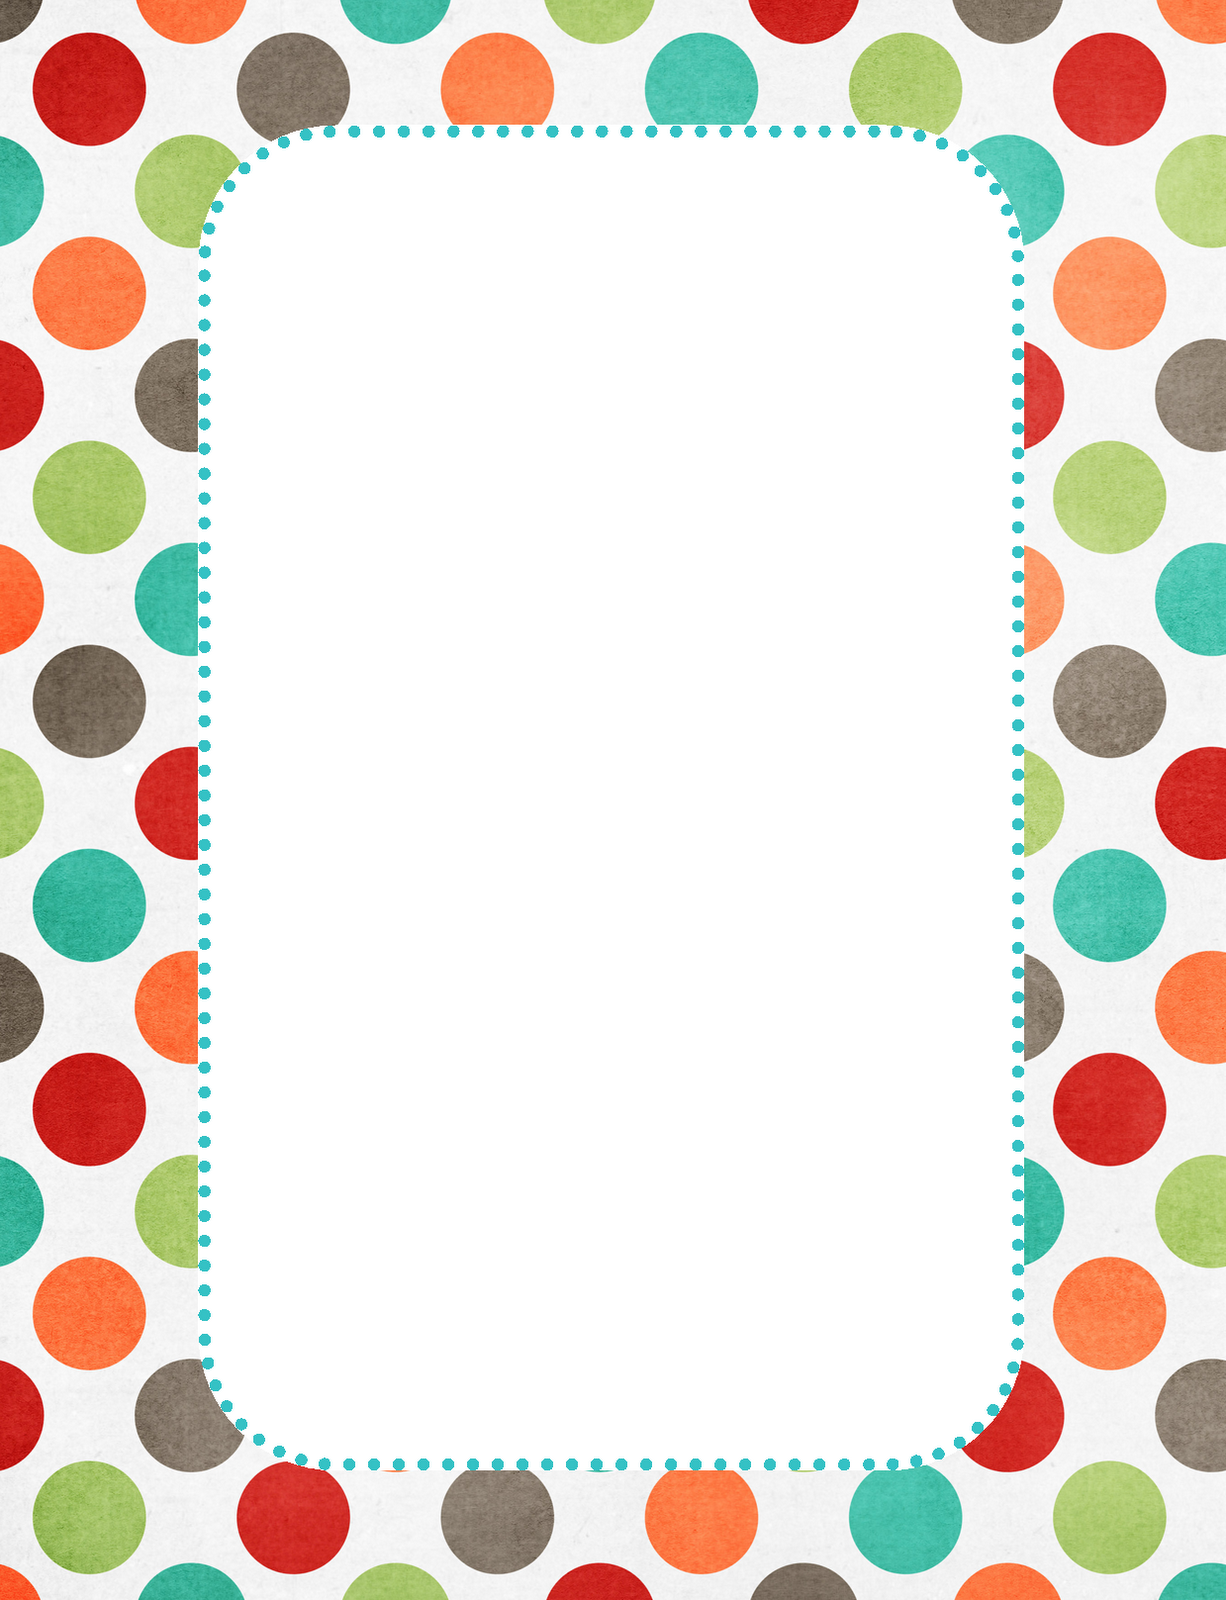 Free May Border Cliparts, Download Free Clip Art, Free Clip.